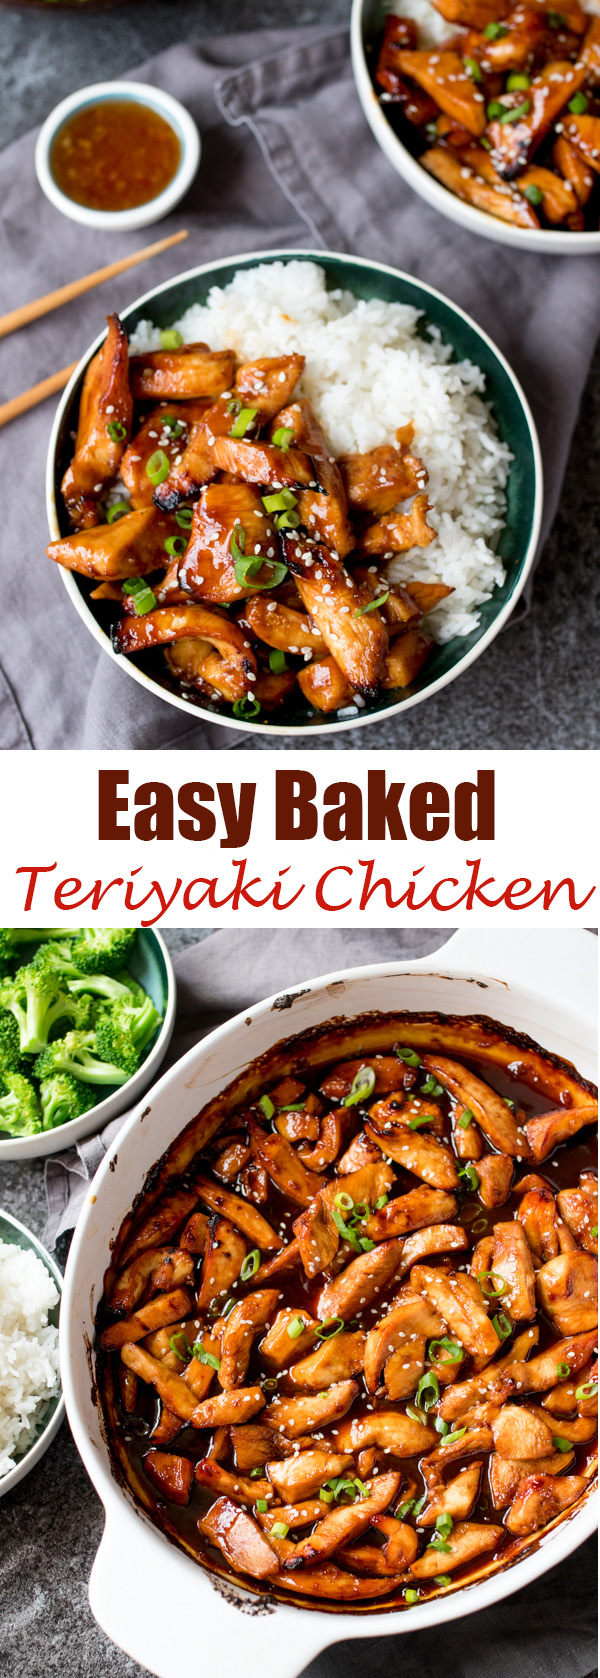 baked-teriyaki-chicken-pin.jpg